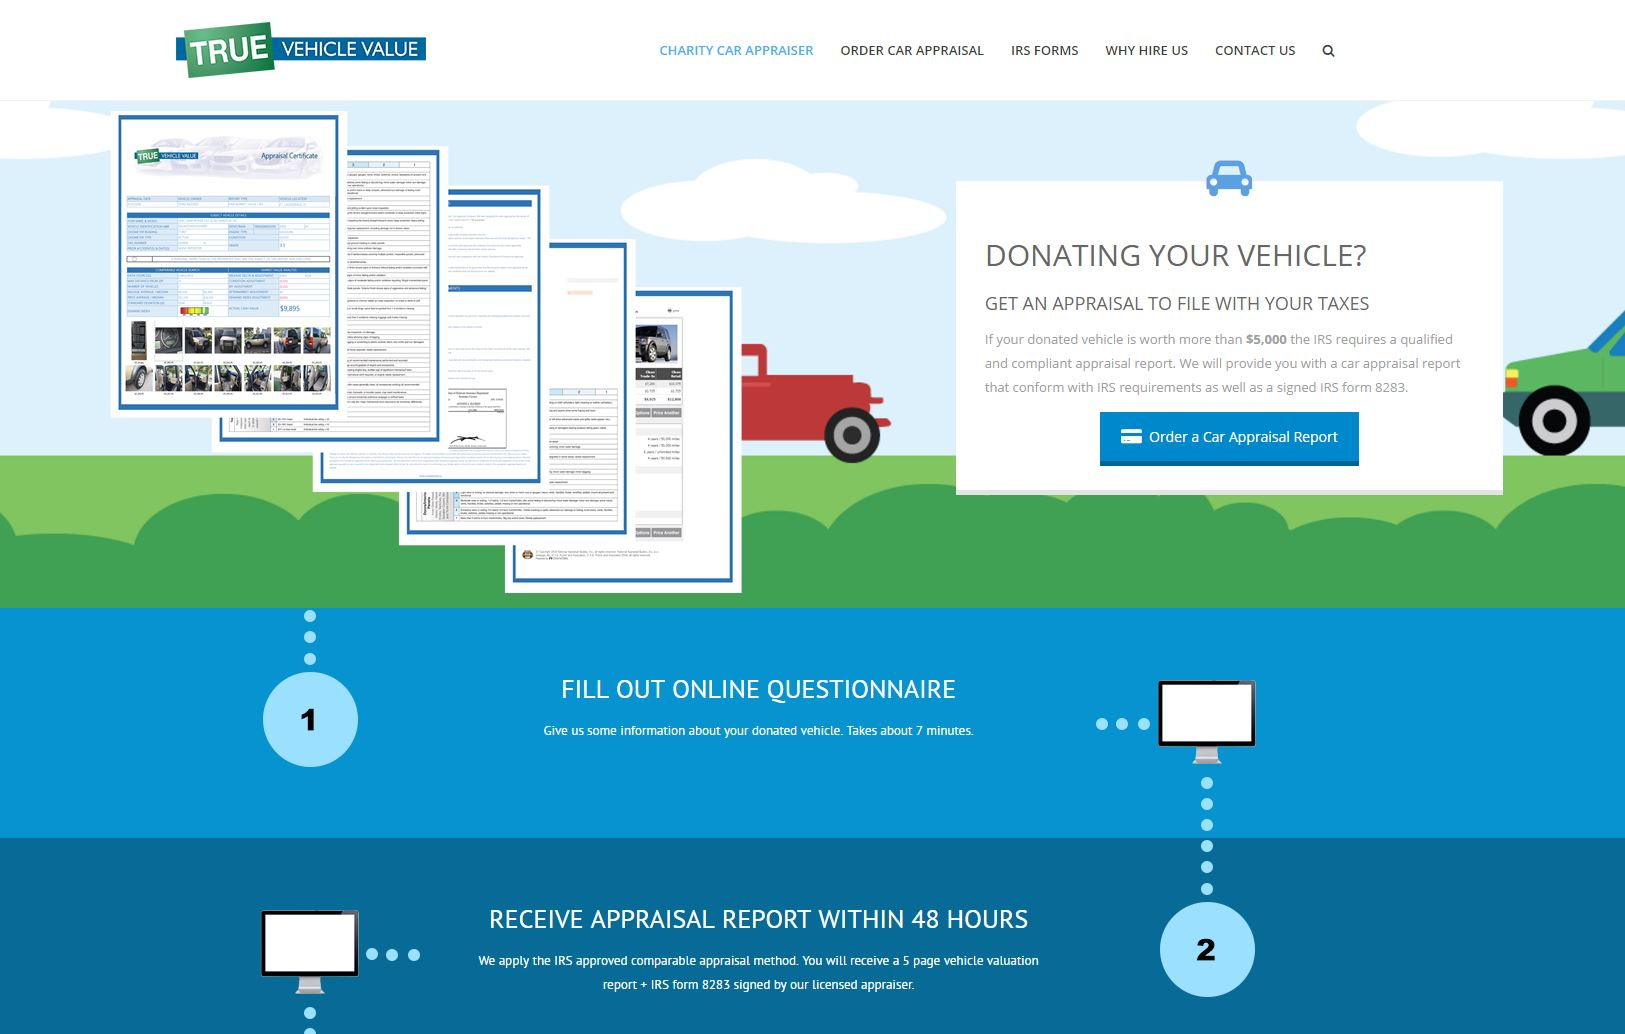 Charity car appraisal website redesigned to offer better user experience for clients requesting valuation reports on their donated property